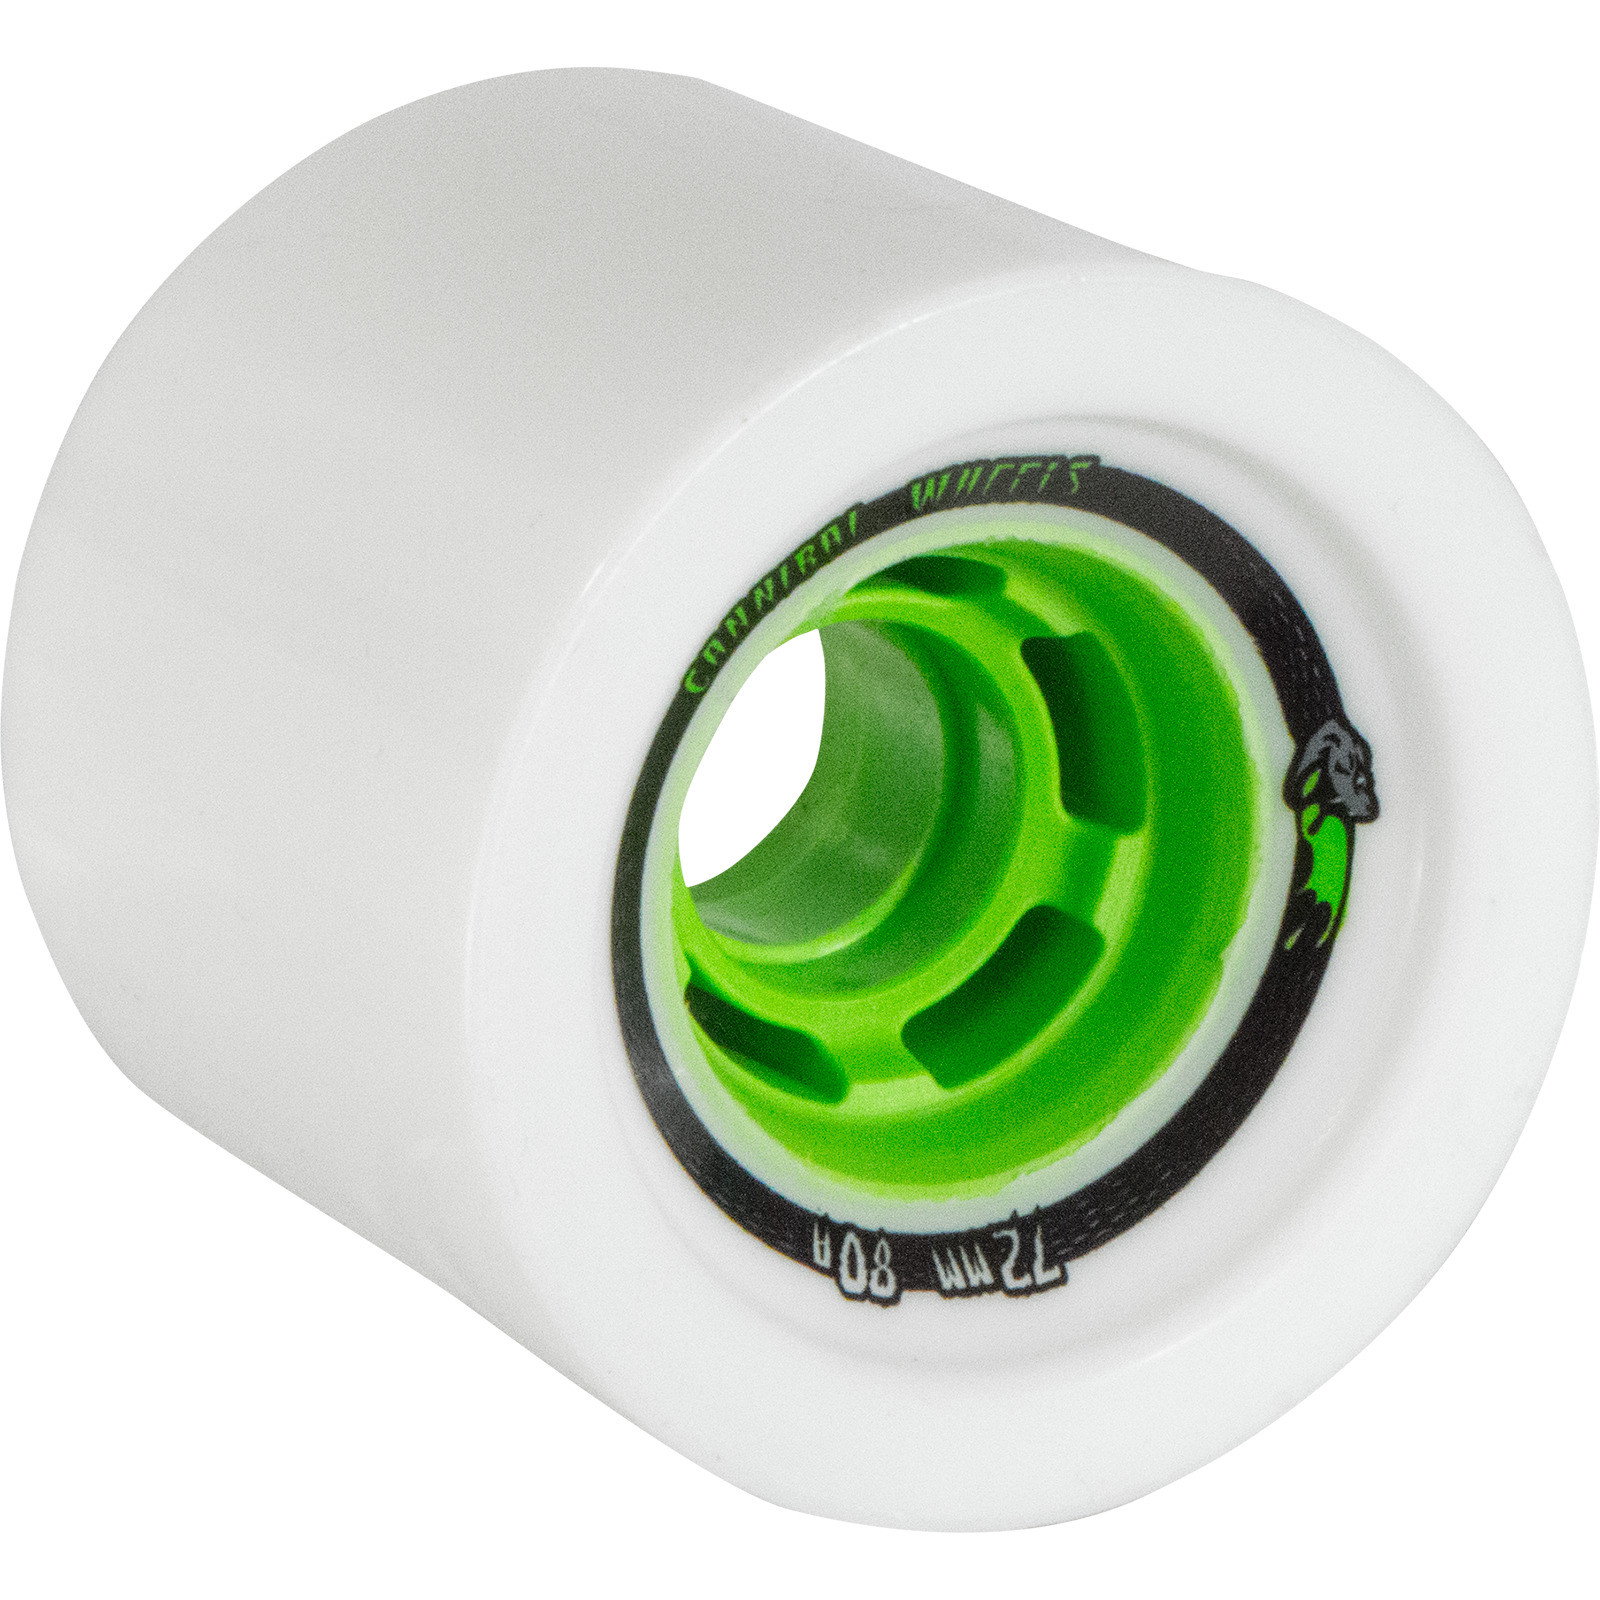 Venom Cannibal Cobra Core White   Green Longboard Skateboard Wheels – 72mm  80a. News.    868fb4615d6